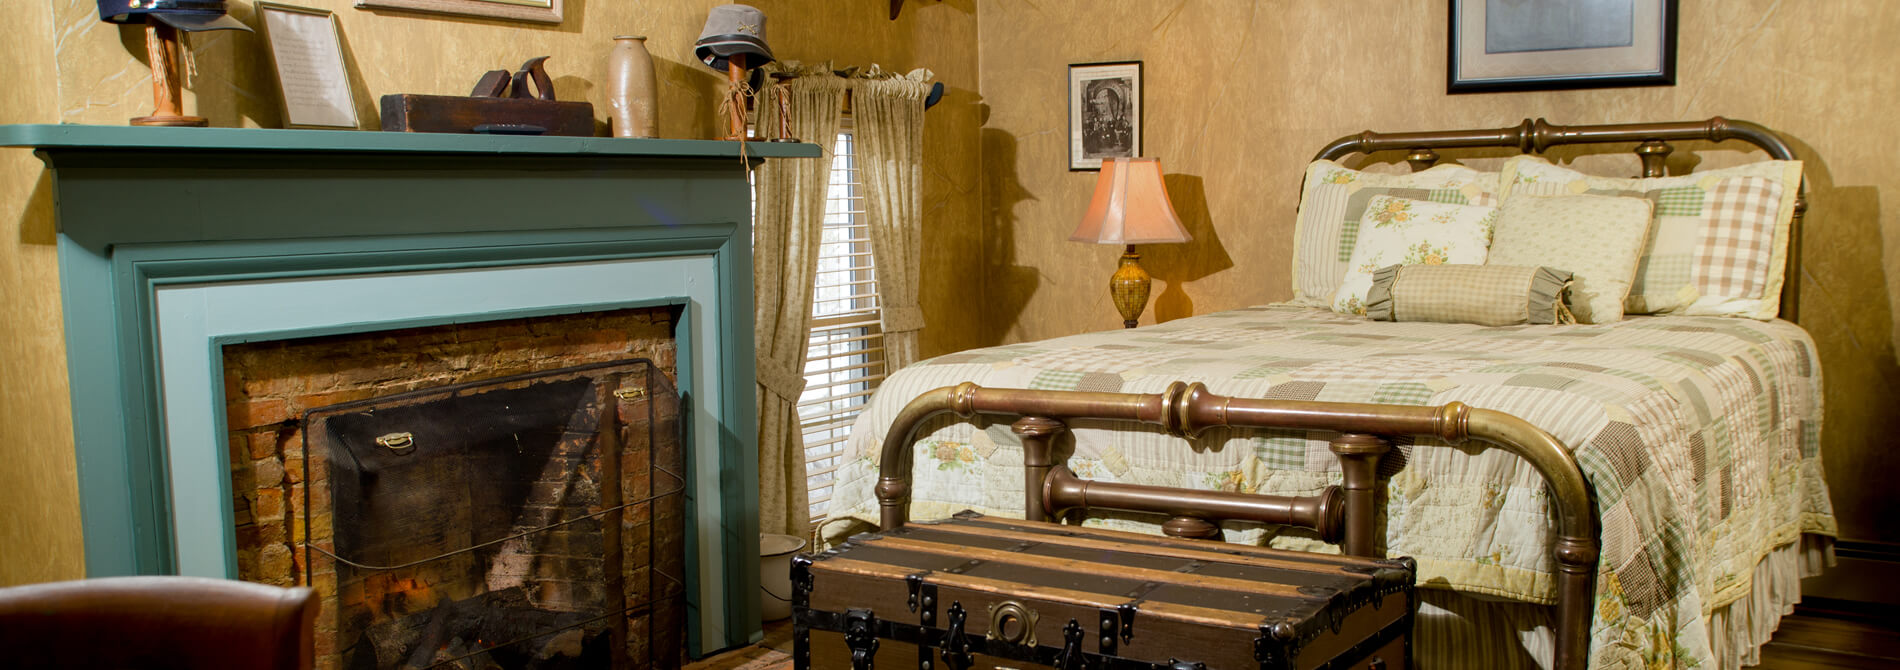 Historic civil war theme bedroom with cream walls striped travel chest brass framed bed